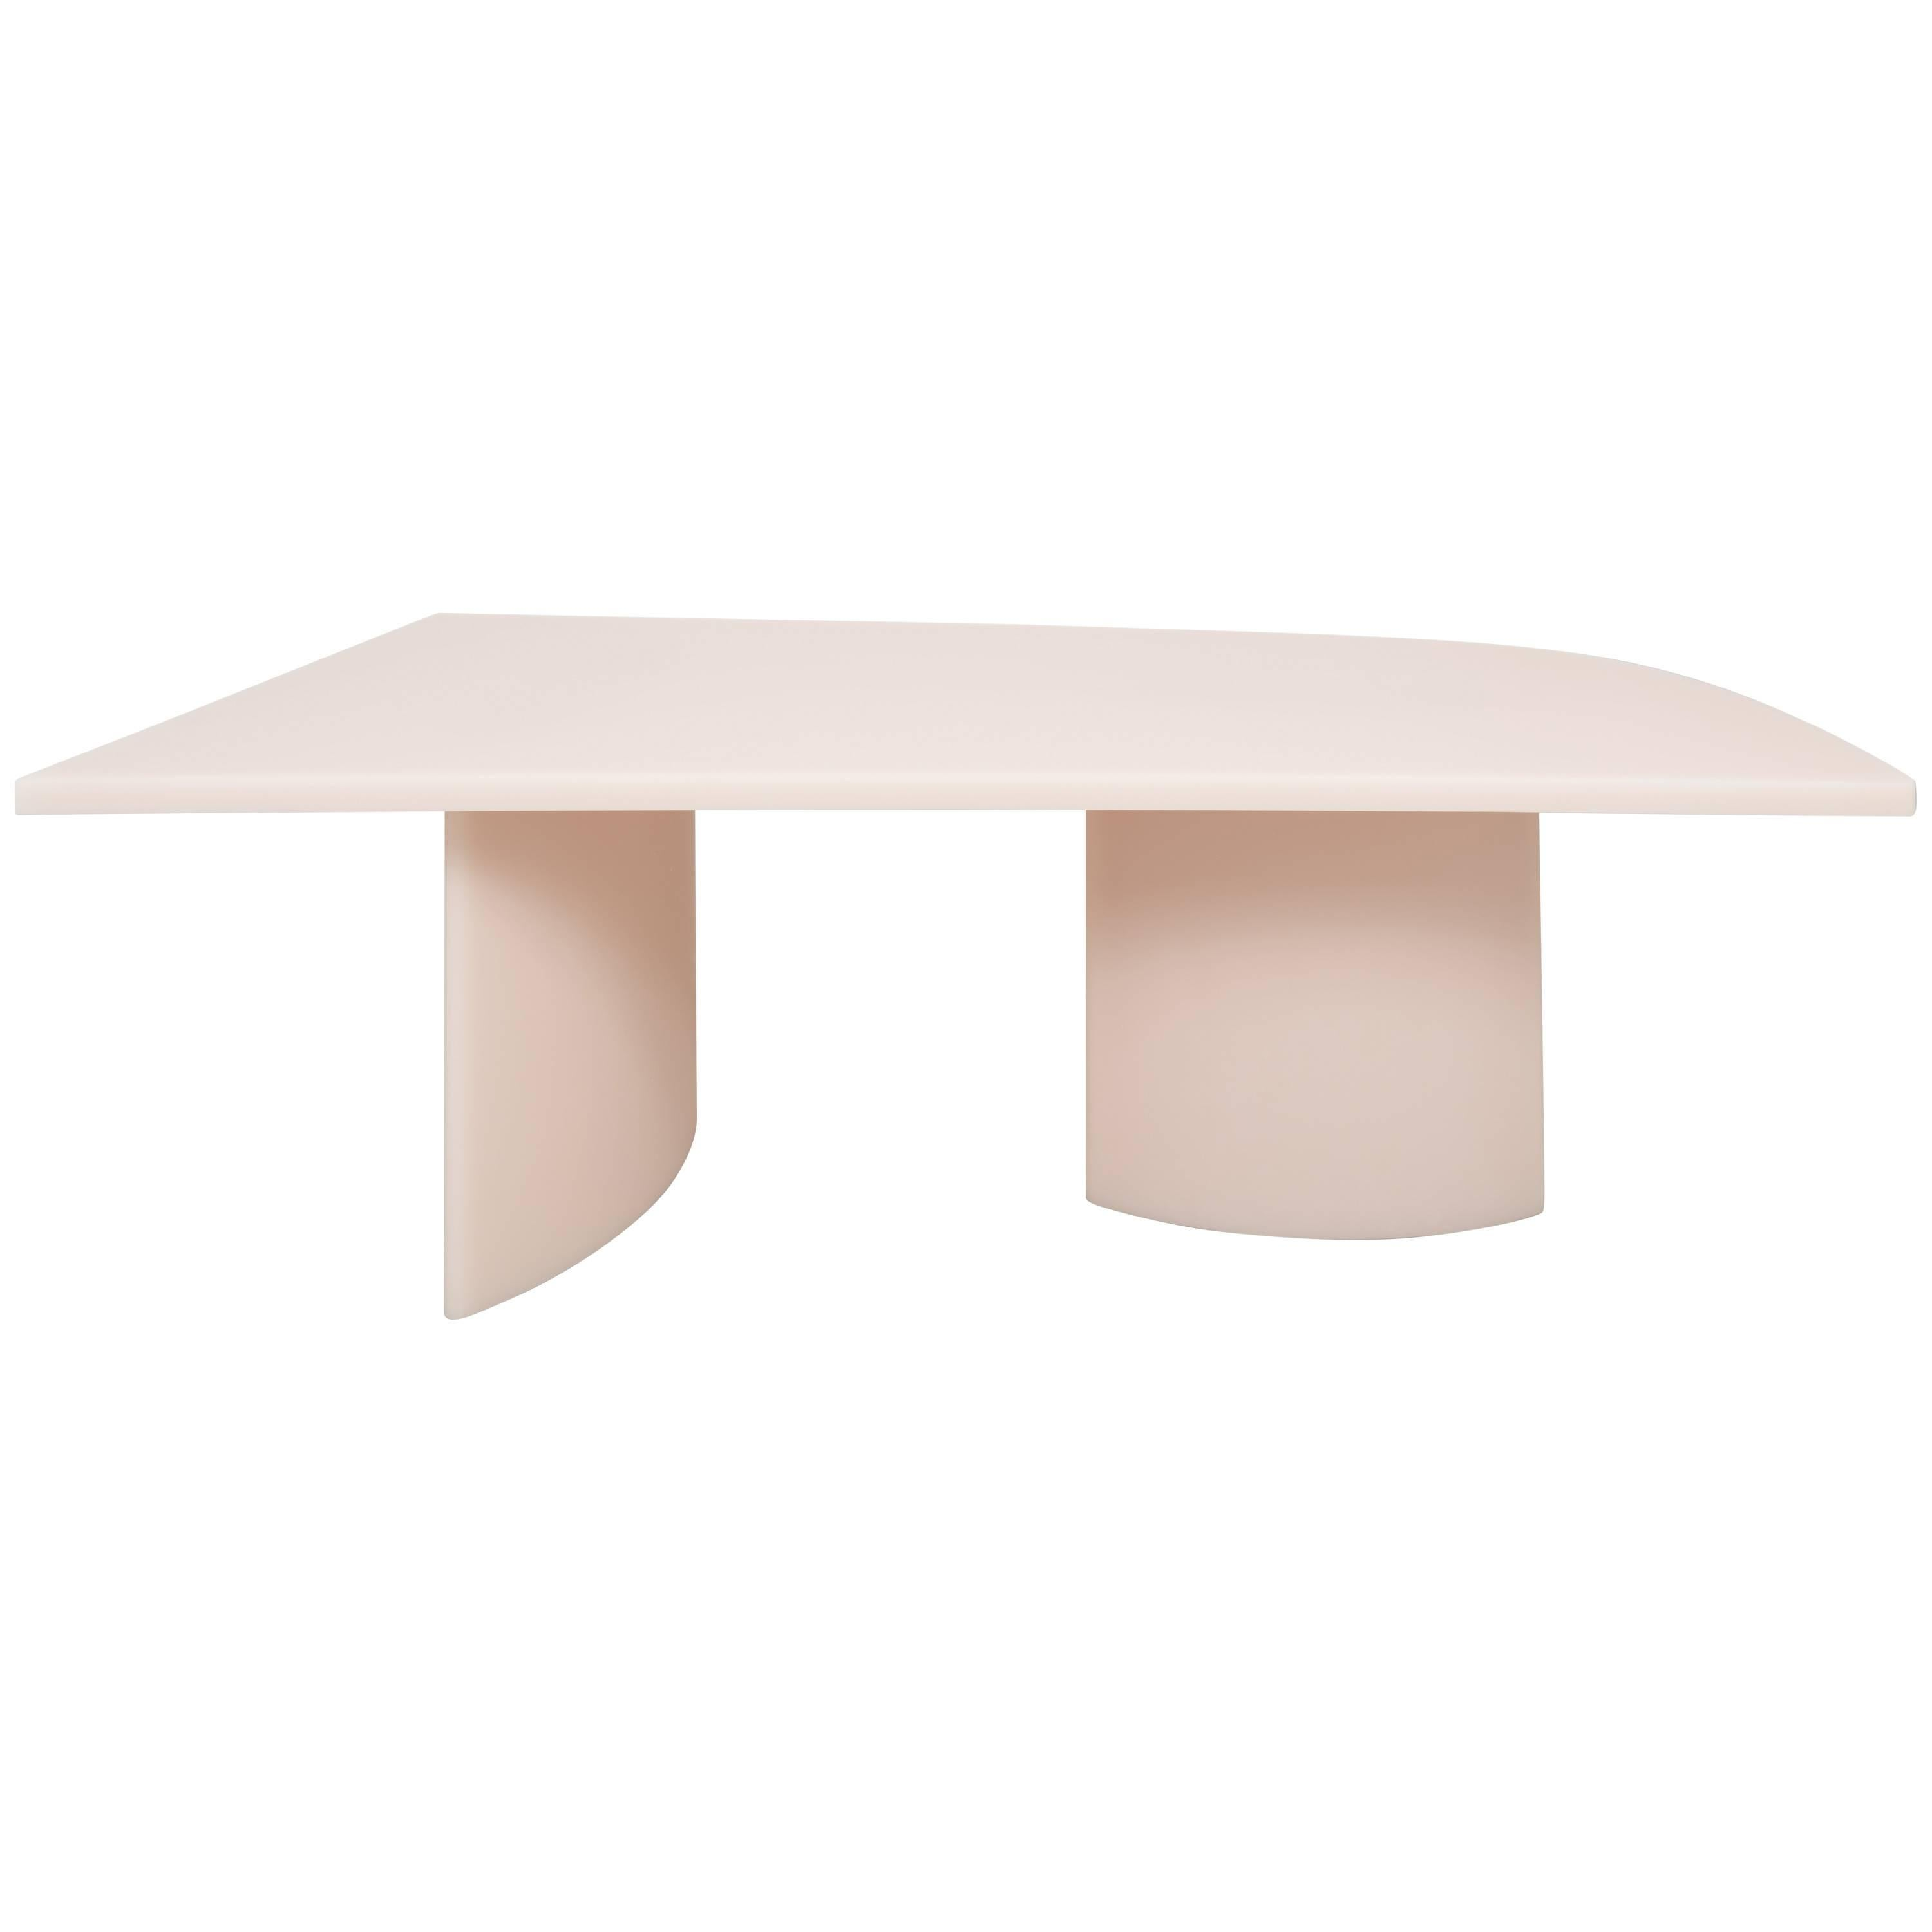 Contemporary Resin Dining Table by Sabine Marcelis, matte, SOAP colour